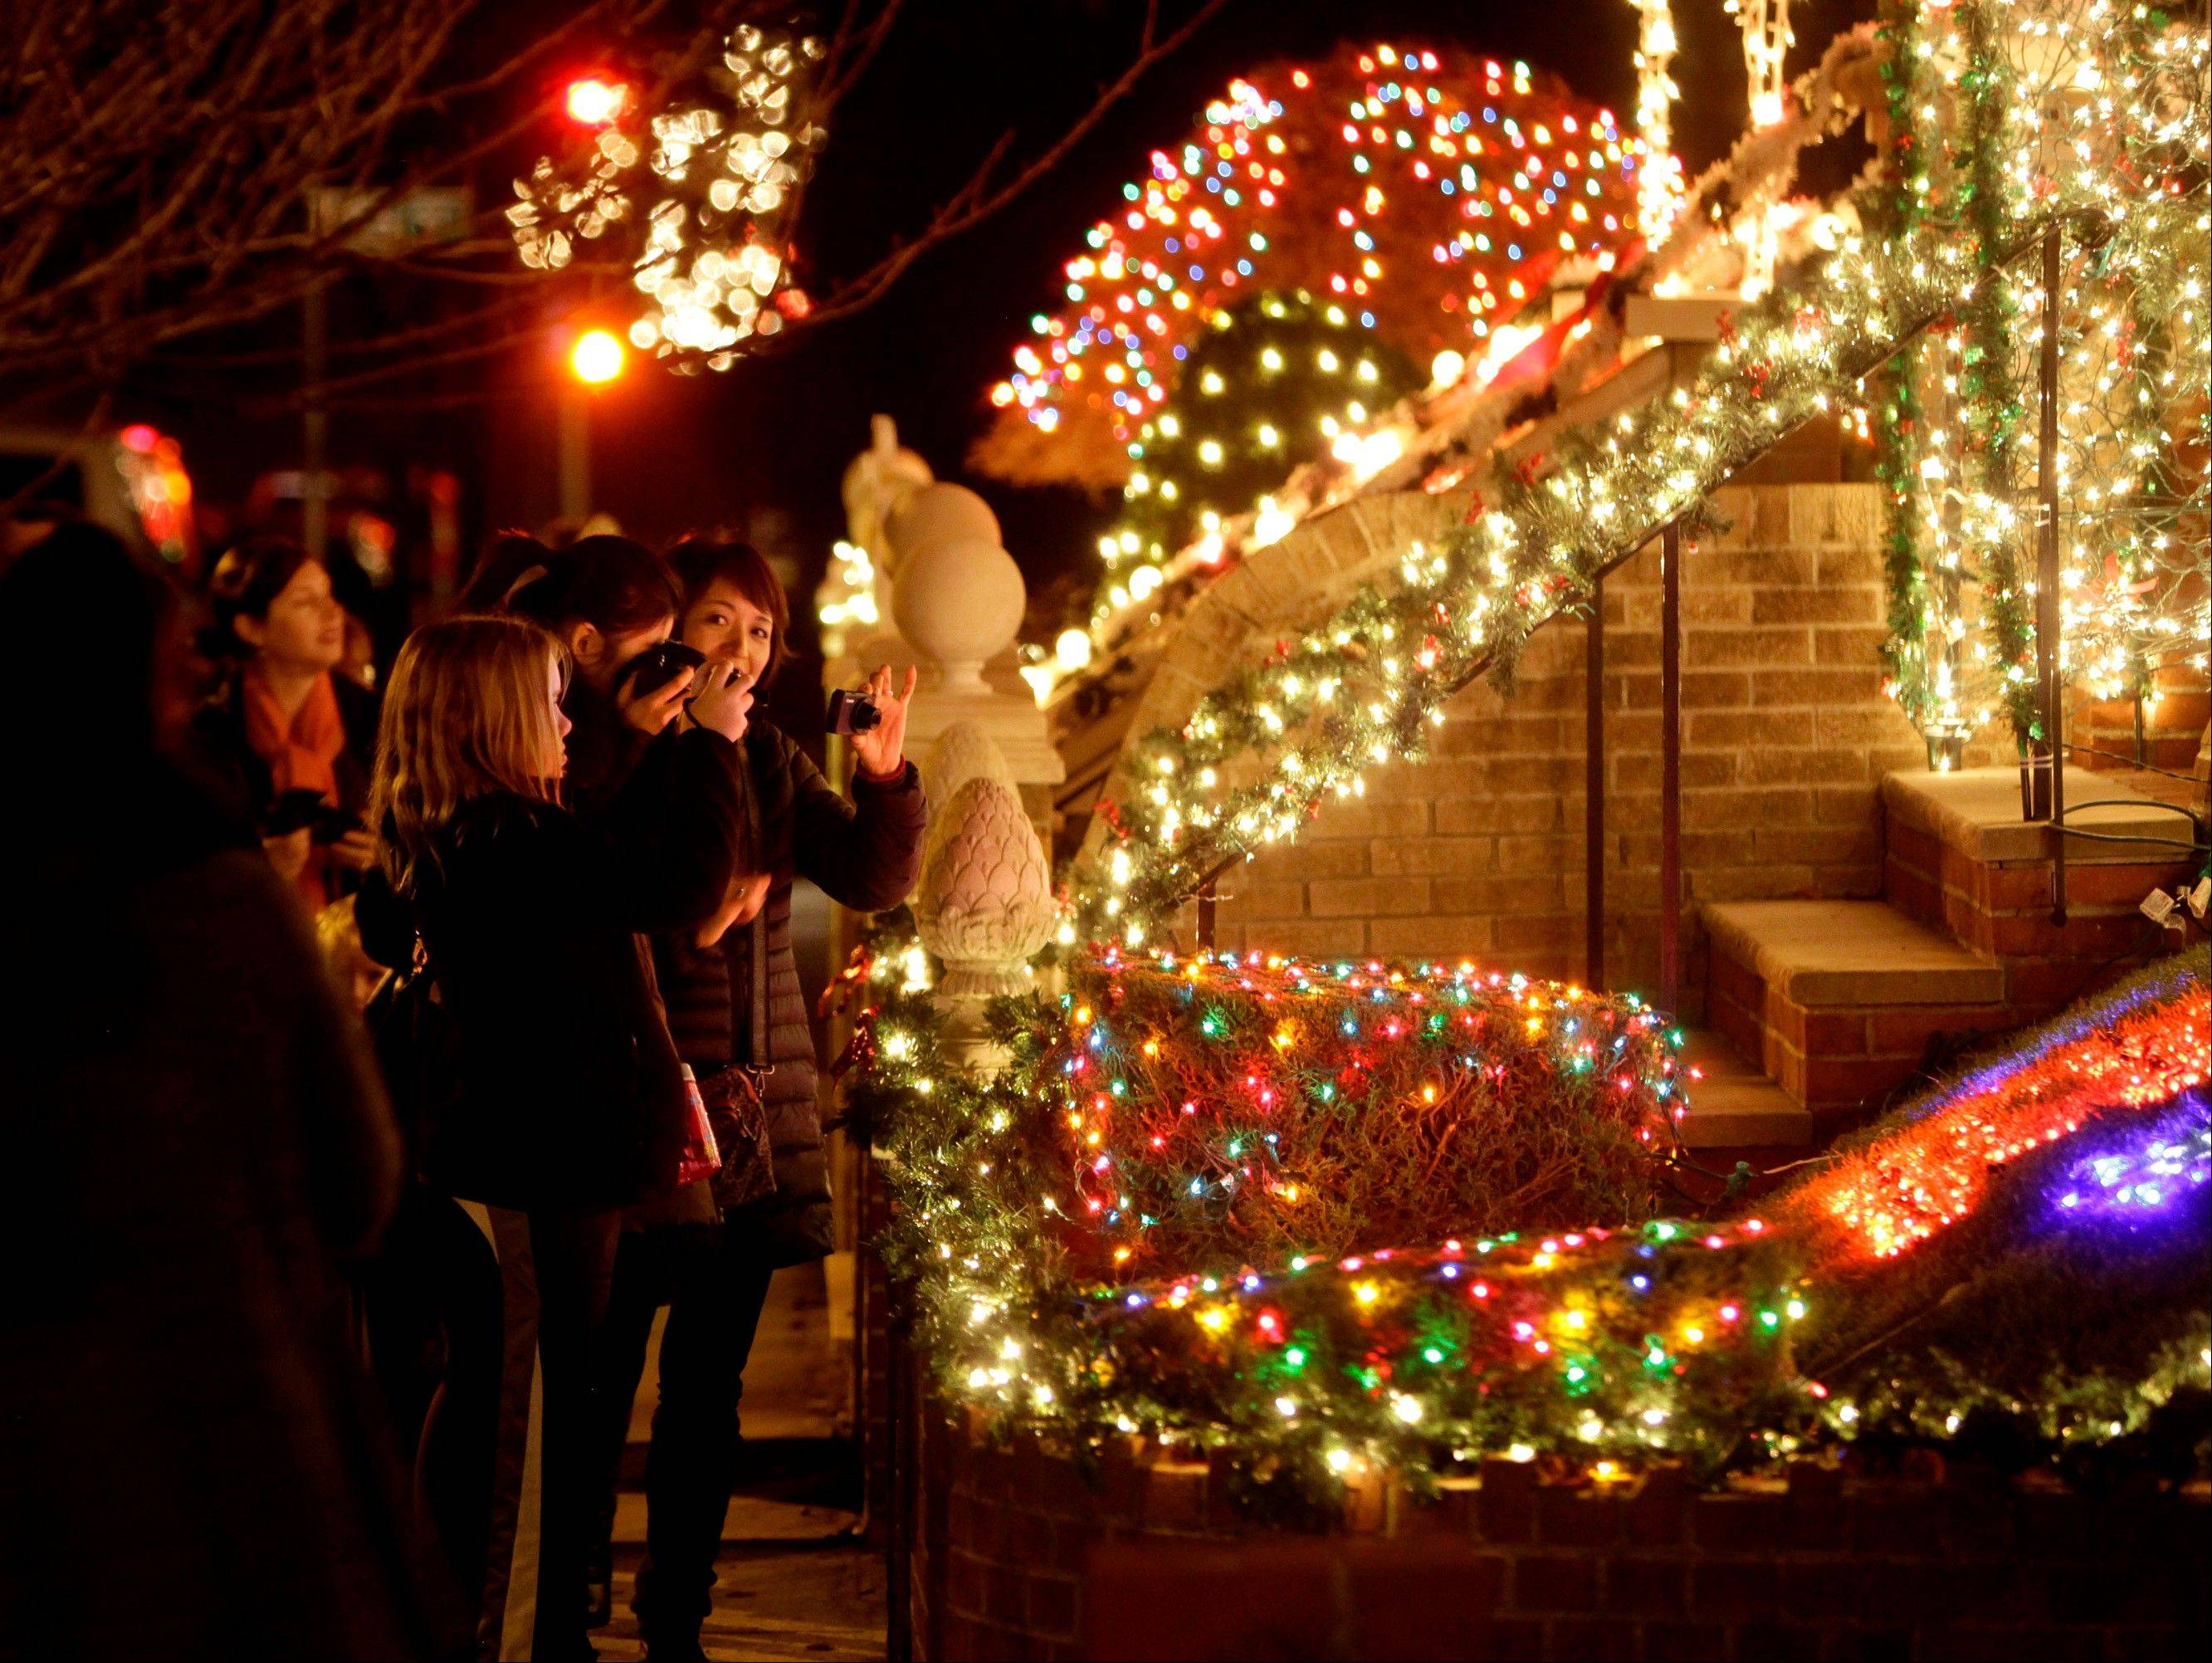 Spectators view an elaborately decorated home for the holidays in the Brooklyn.